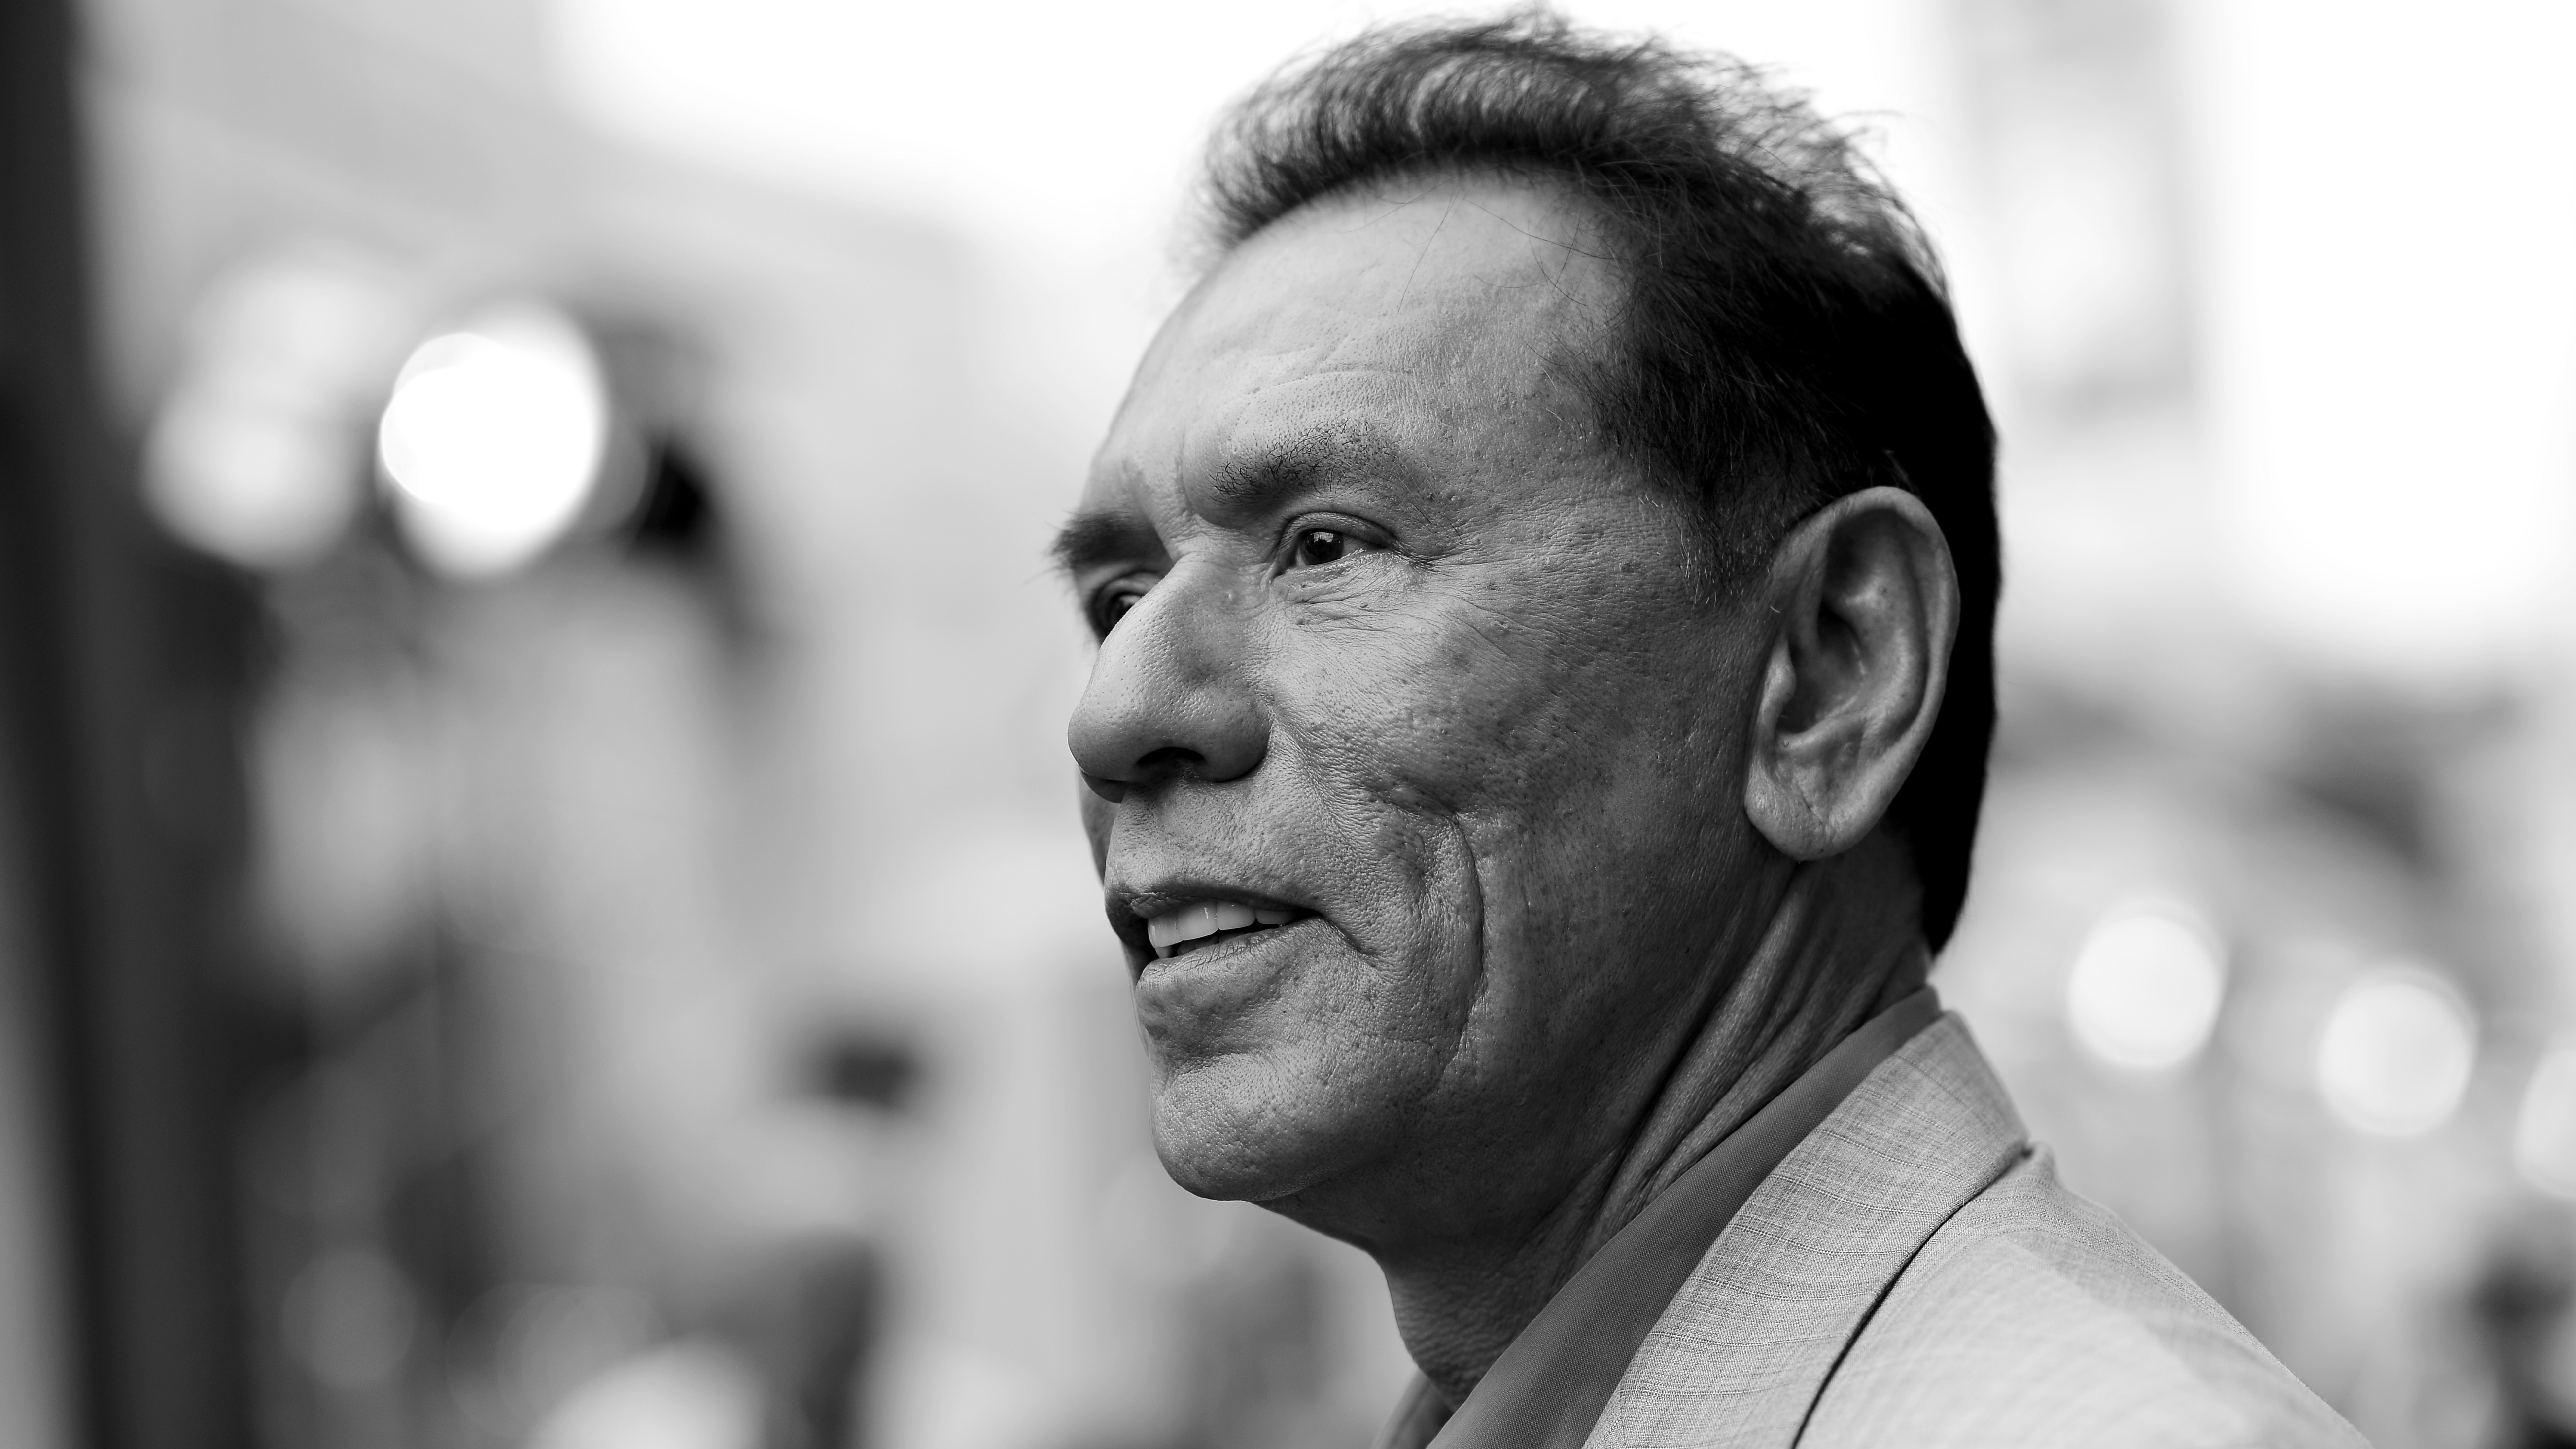 Wes Studi His Cherokee Nation Childhood And How He Discovered